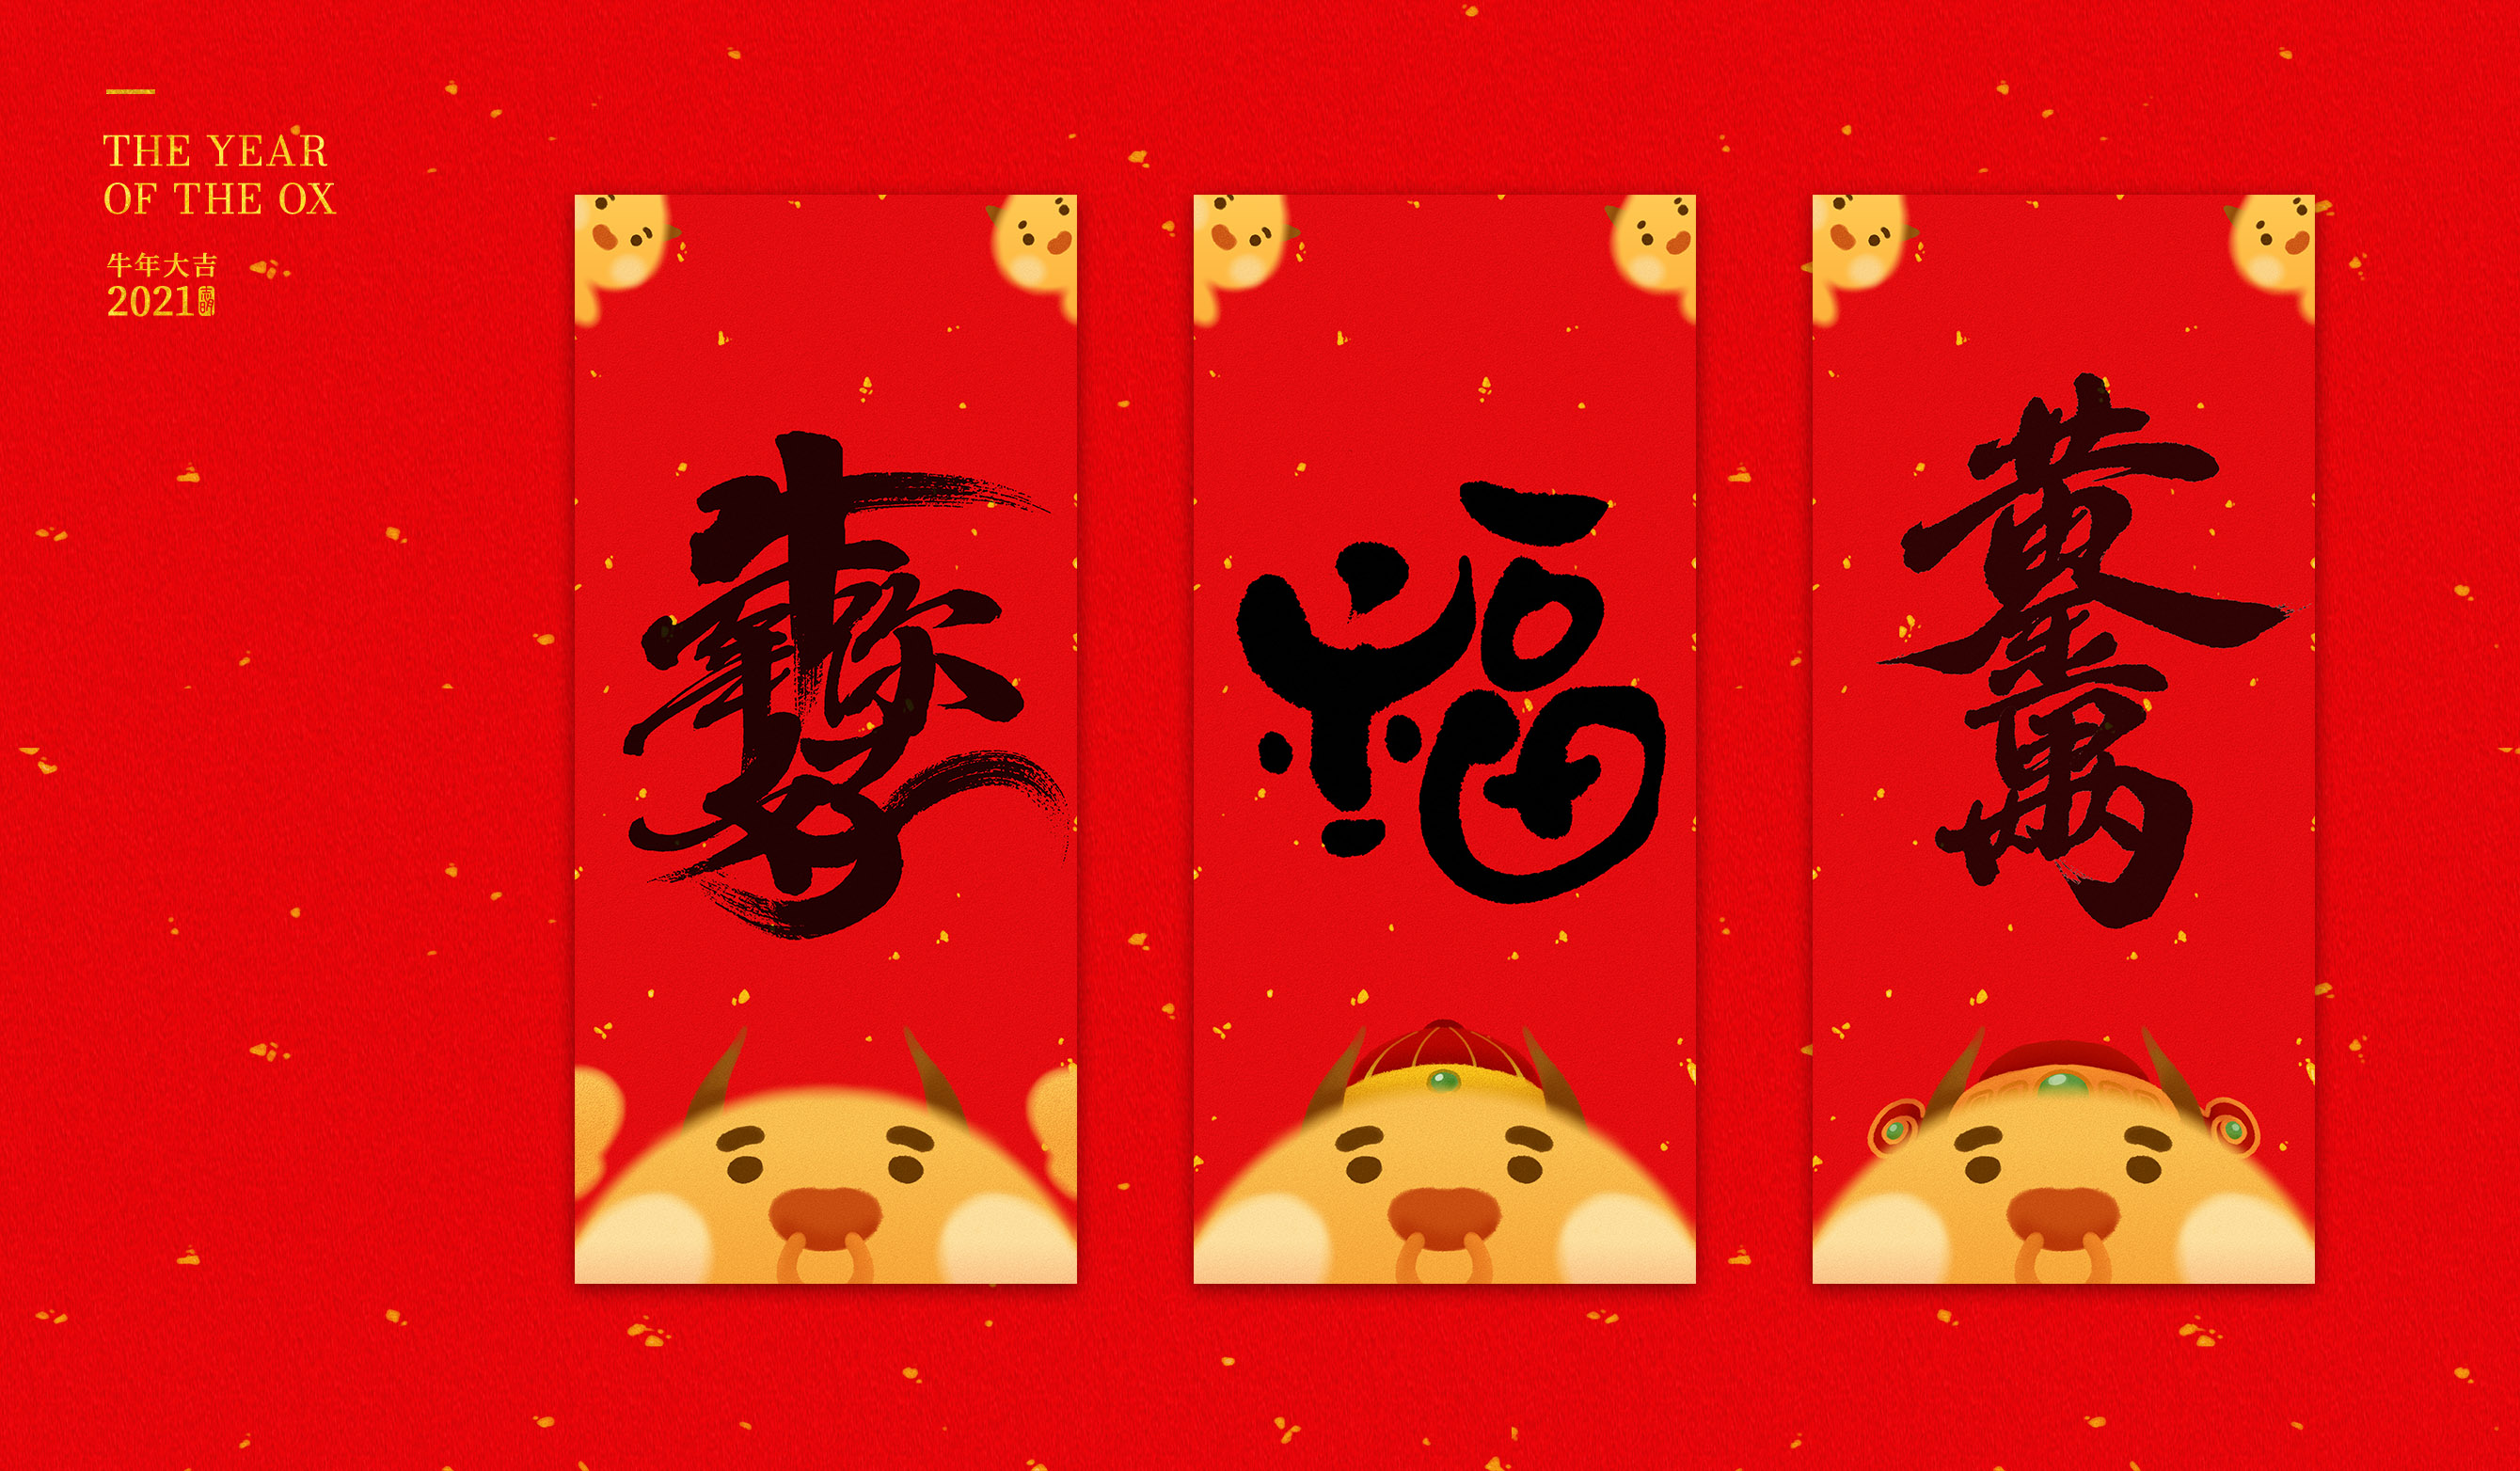 Year of the Ox greetings free commercial fonts